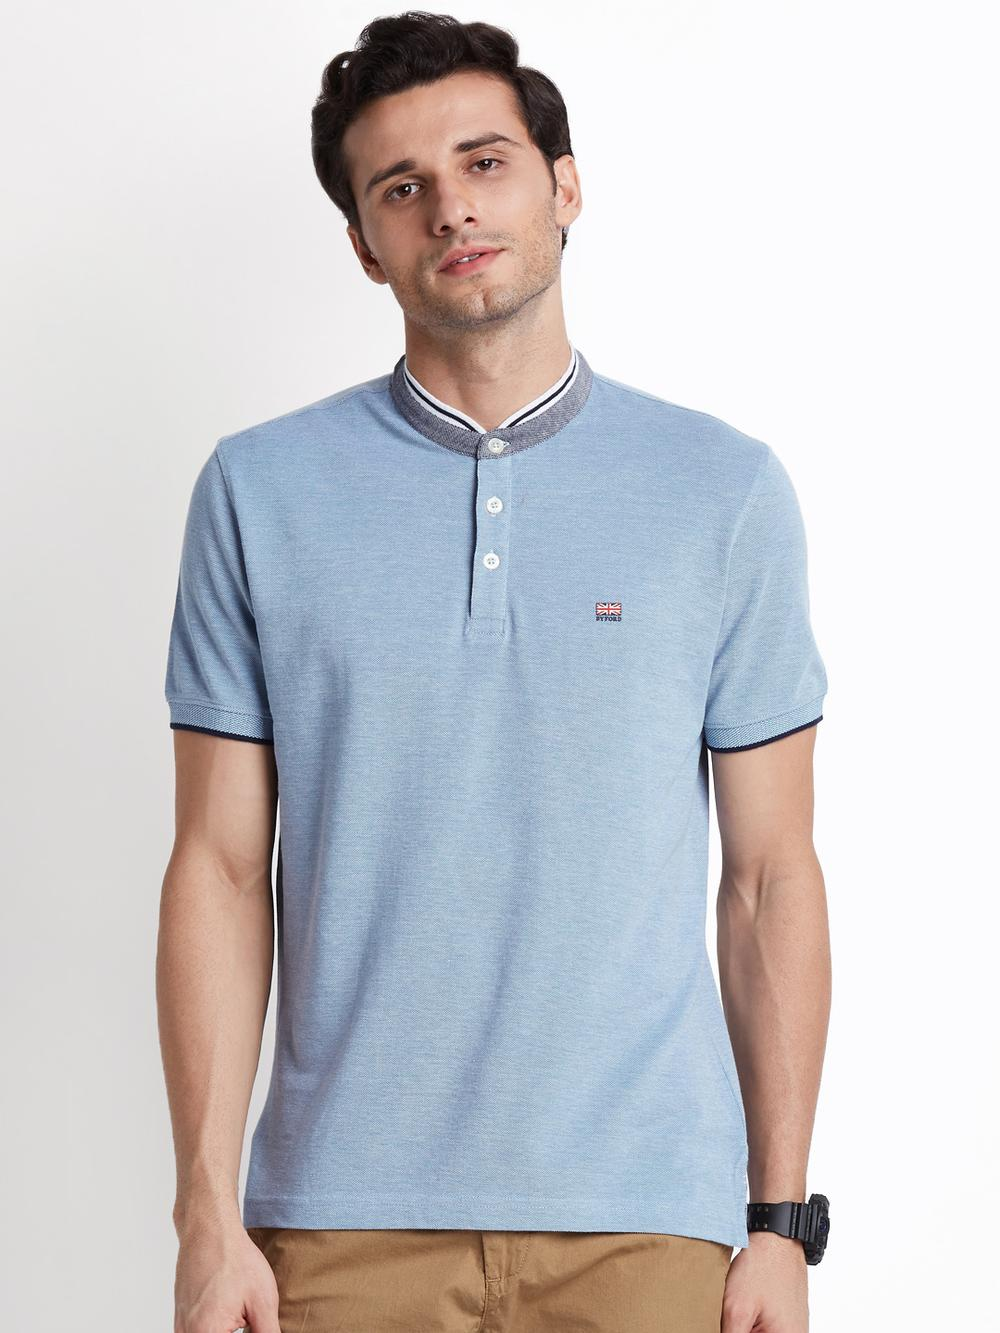 b25bc0a3 Buy T Shirts for Men Online with Best Price in India | Pantaloons